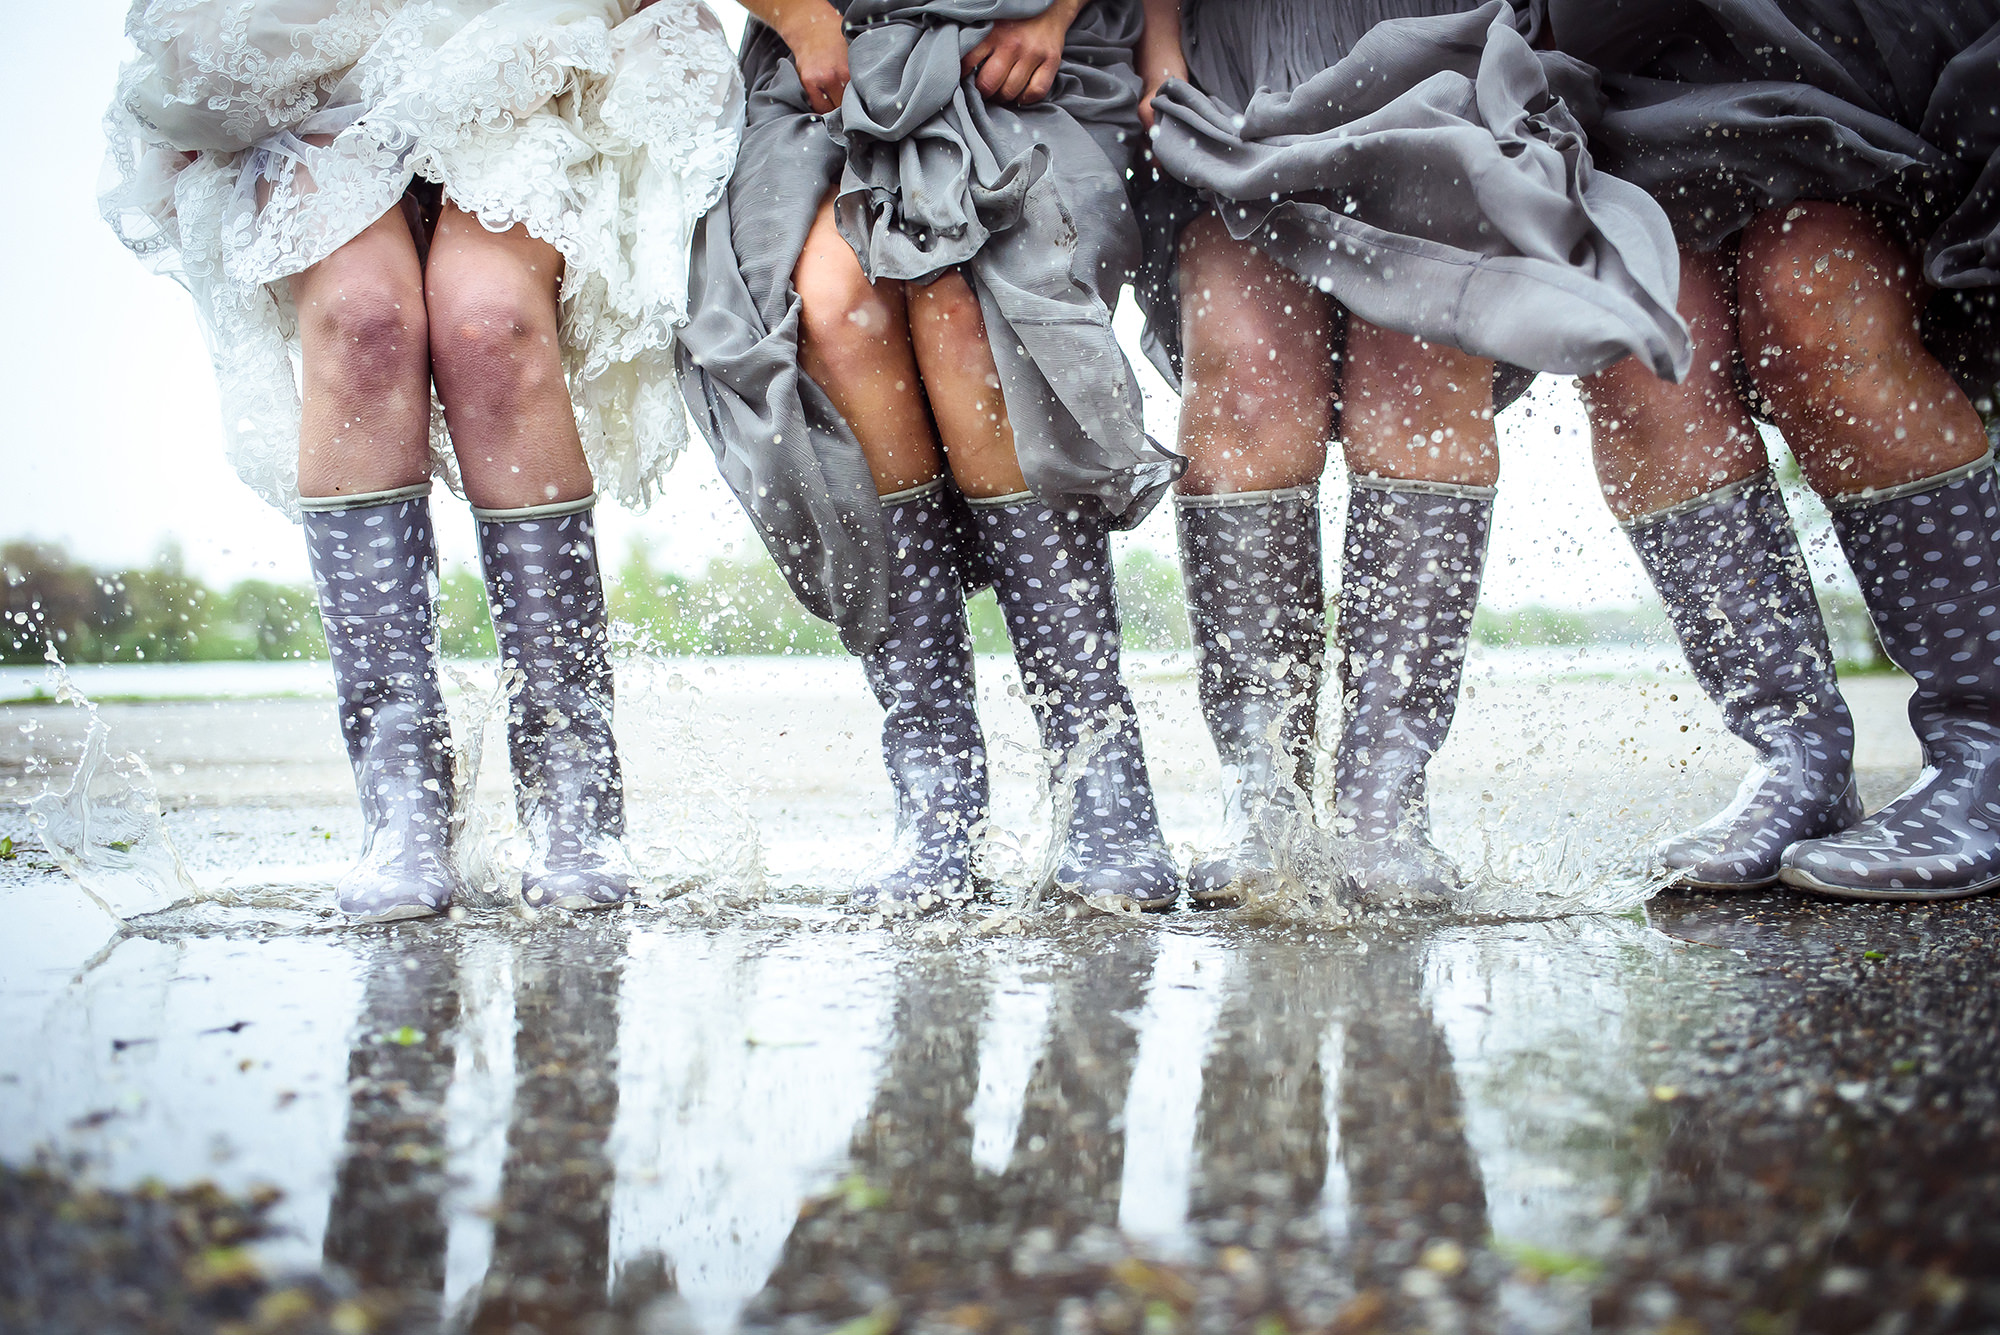 rainy-weddings-in-omaha-omaha-wedding-photographer.jpg